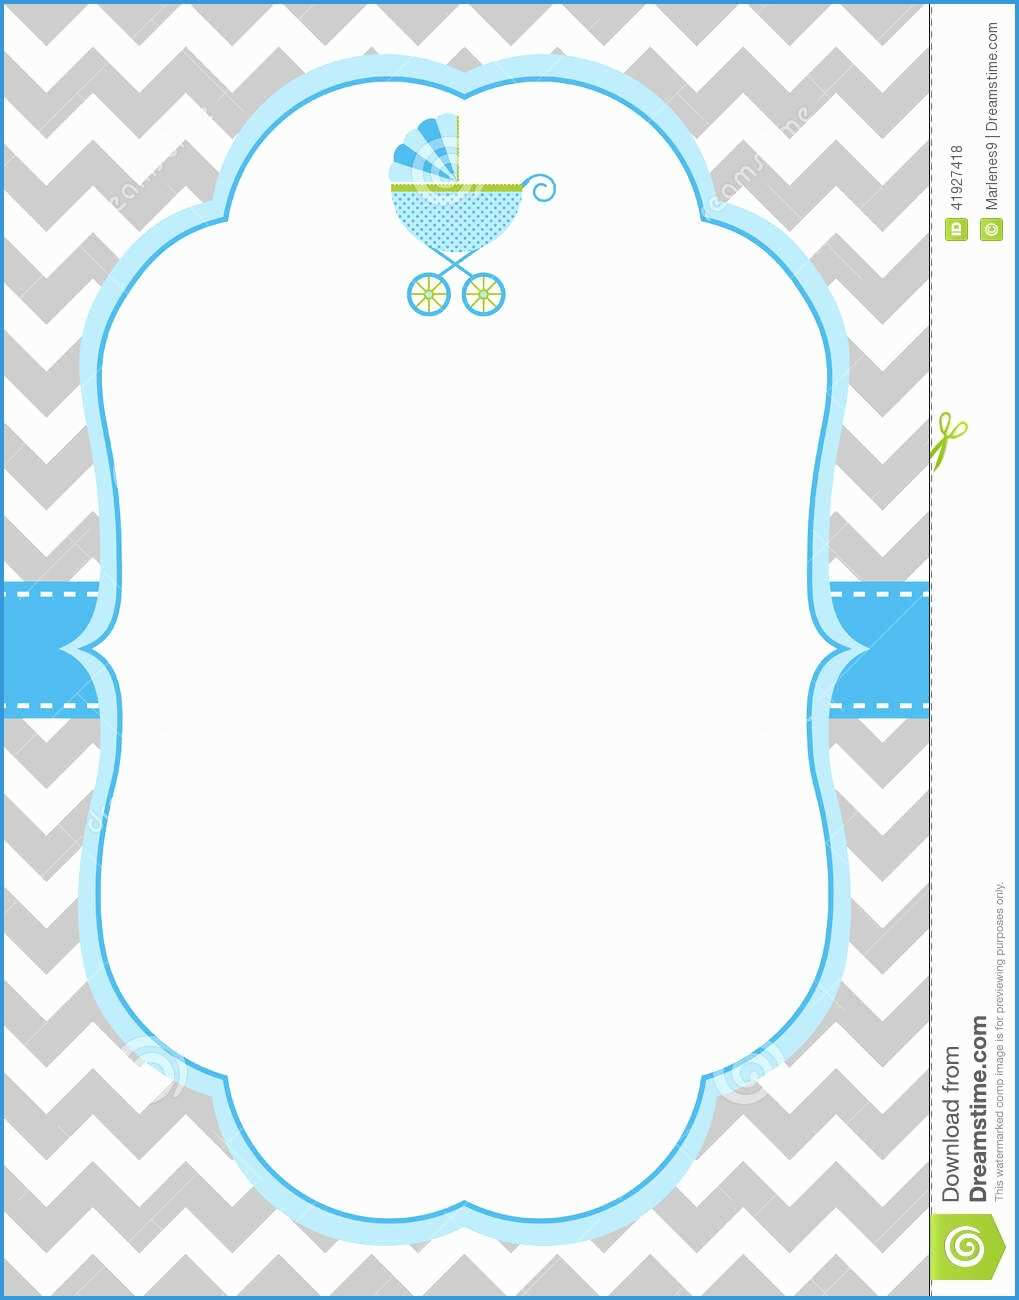 039 Baby Shower Invite Template Word Free Invitation Pertaining To Free Baby Shower Invitation Templates Microsoft Word